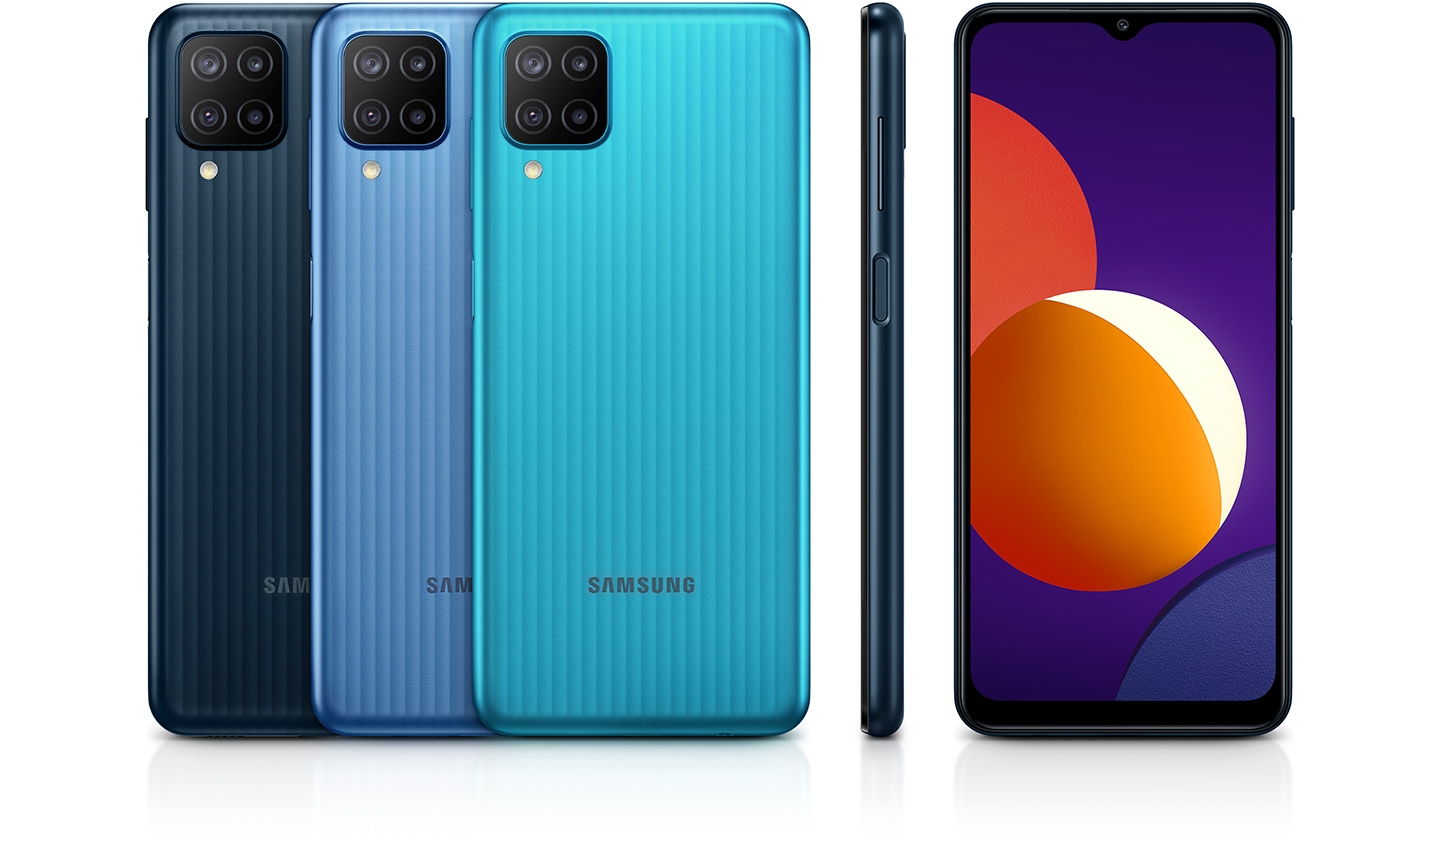 Five devices are showing colors and design. Three are reversed; one is on its side and the last one is looking at the front.